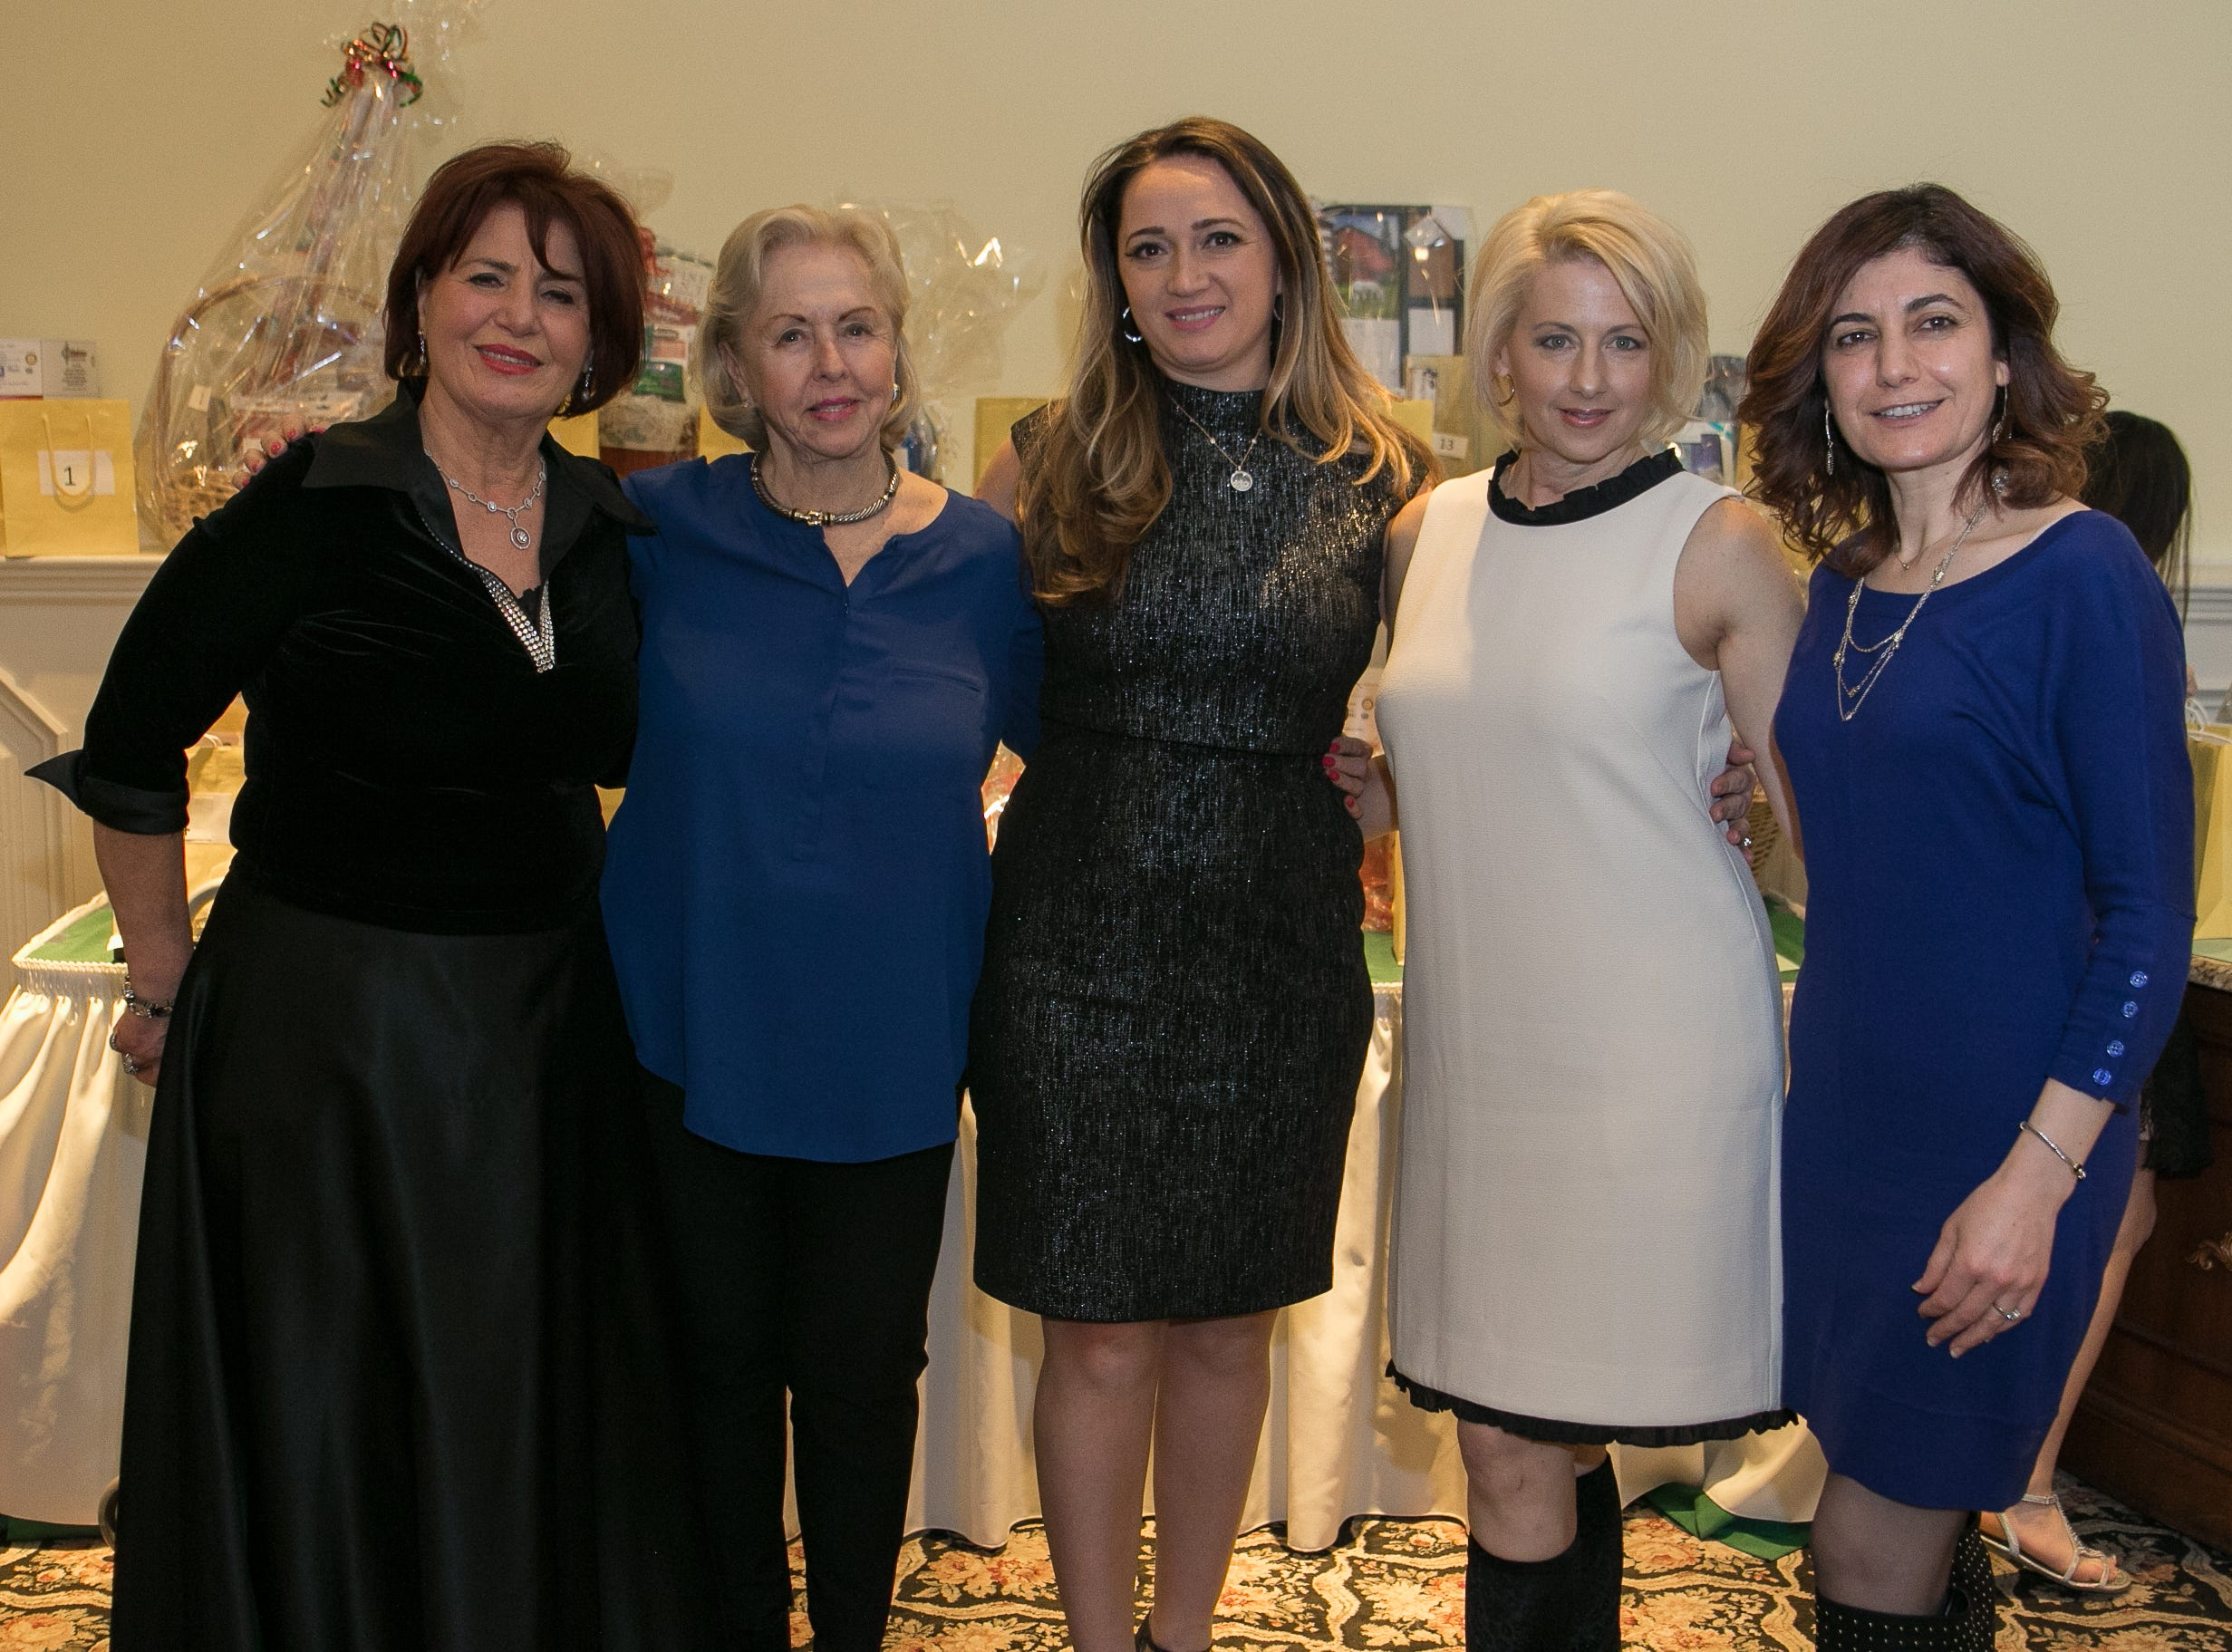 Emmy Eliya, Mary Orr, Tina Sabani, Andrea Goodman, Laila Elia. The Midland Park Ramapo Eisenhower React/ Interact Clubs held it's sixth Annual fashion show and tricky tray at The Brick House in Wyckoff. 01/27/2019